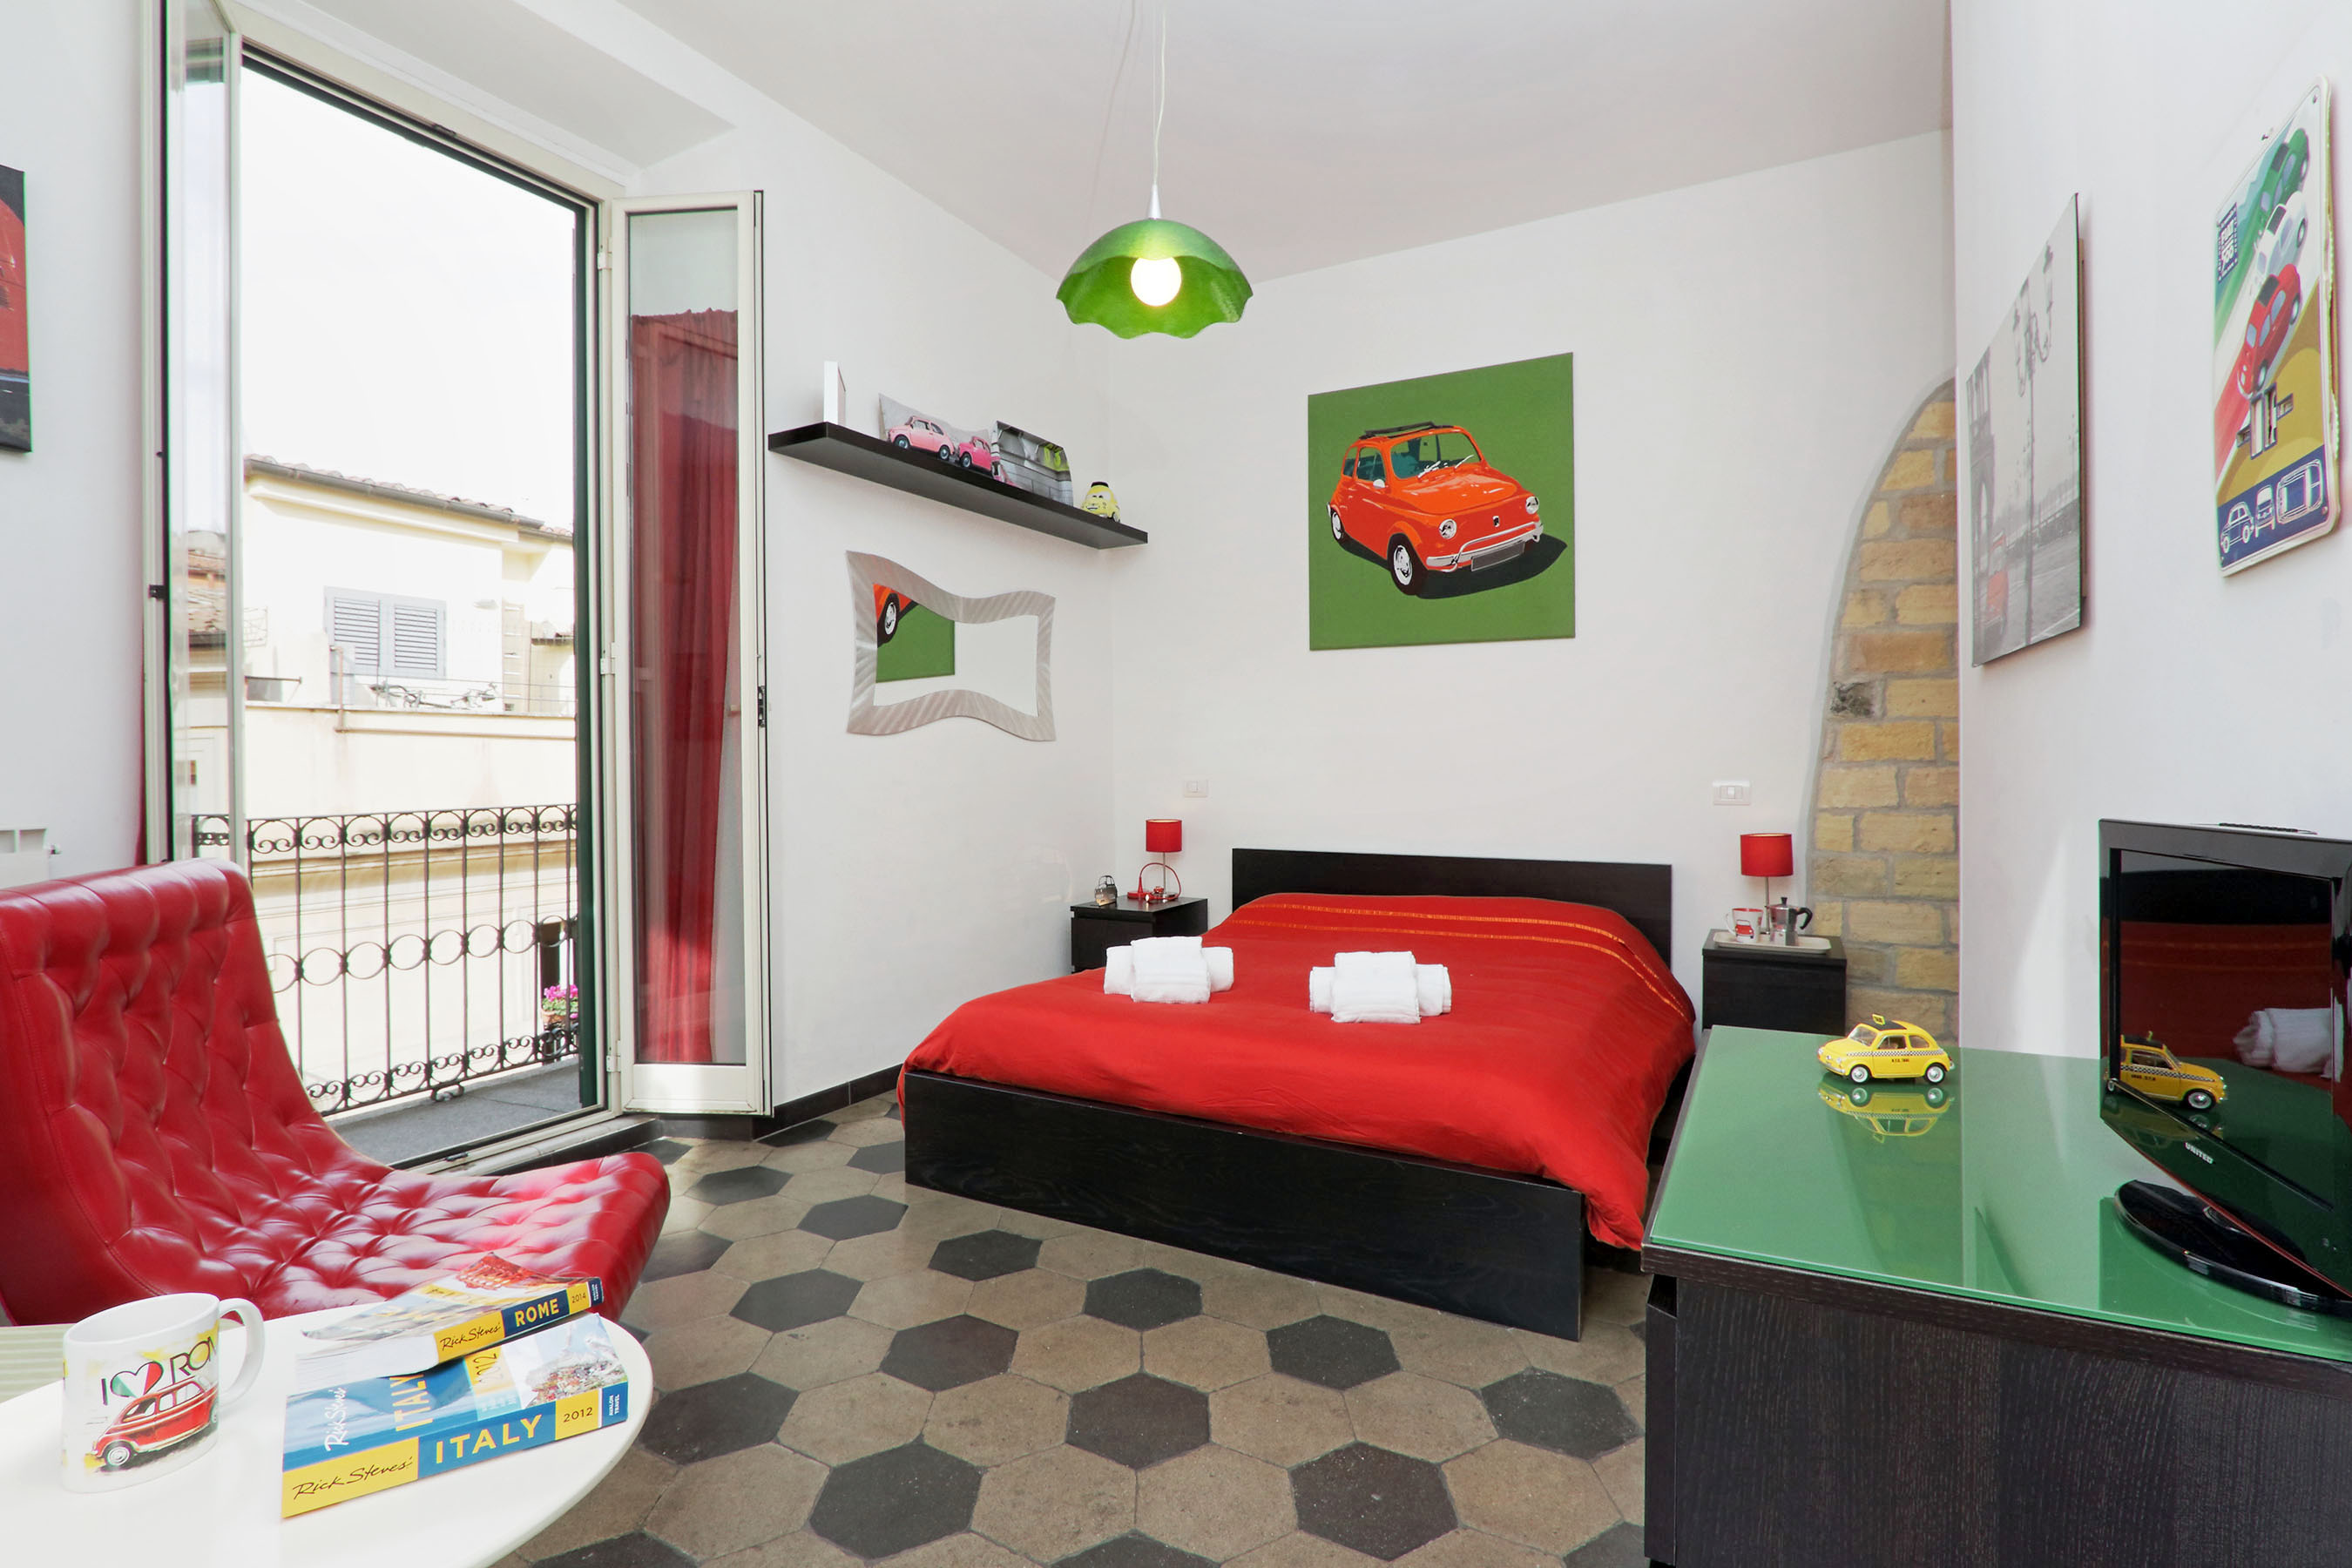 mok house Rome Suite Home B&B & Apartments in Rome